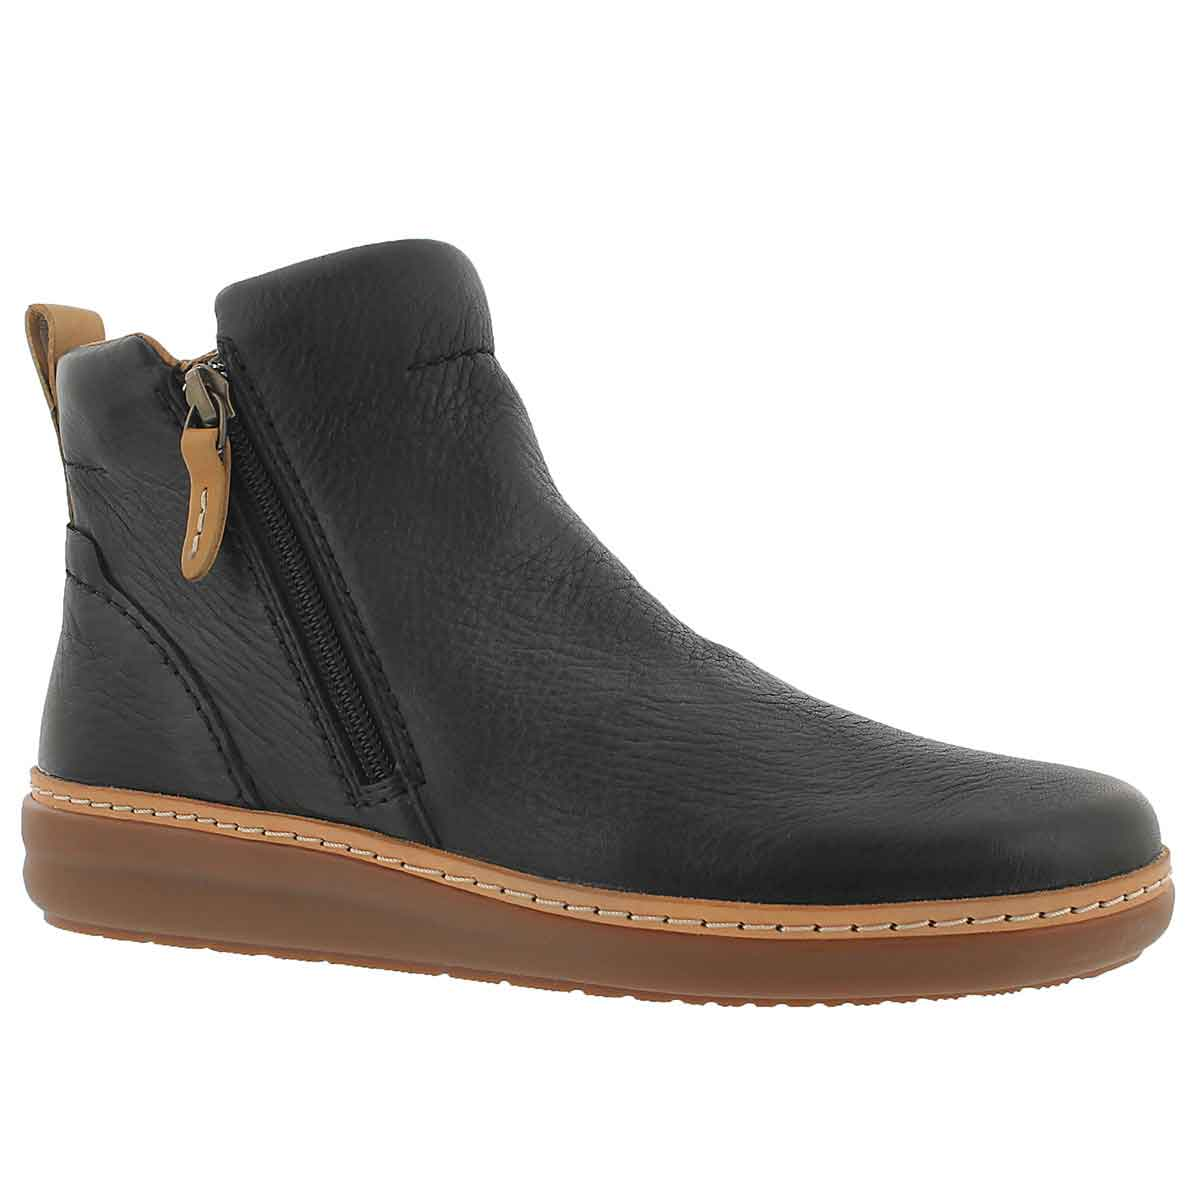 Women's AMBERLEE ROSI black ankle boots